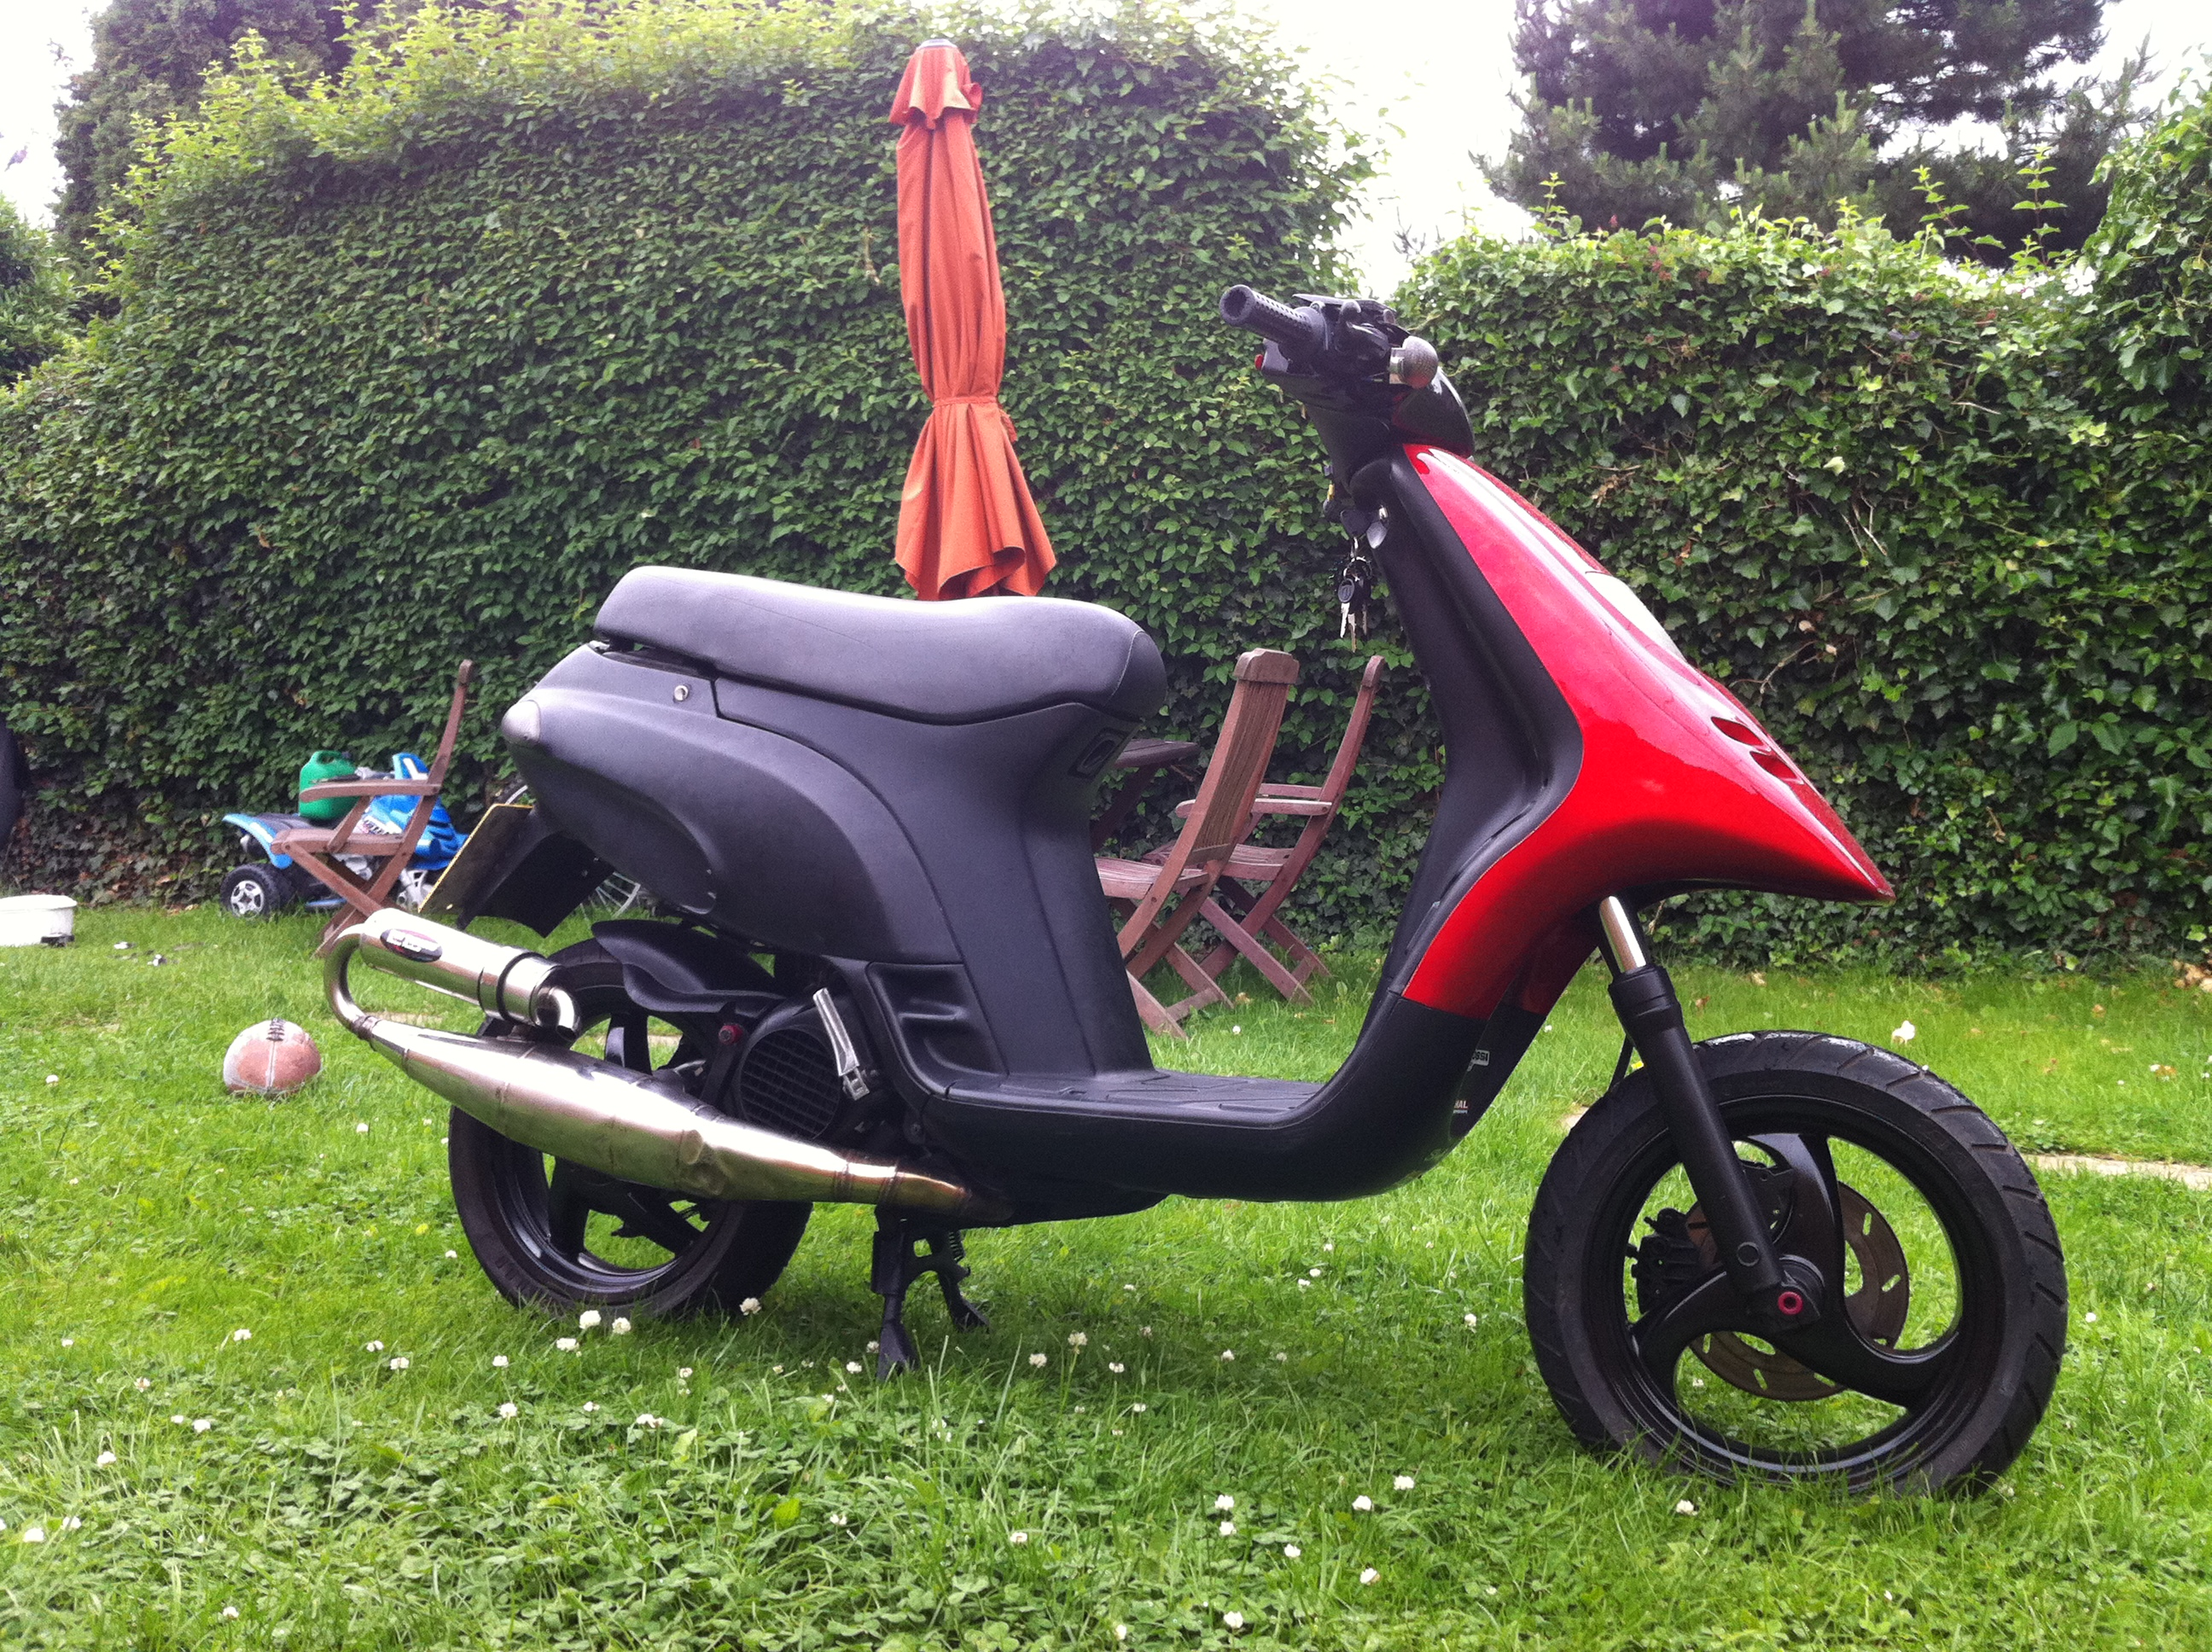 PIAGGIO TYPHOON red